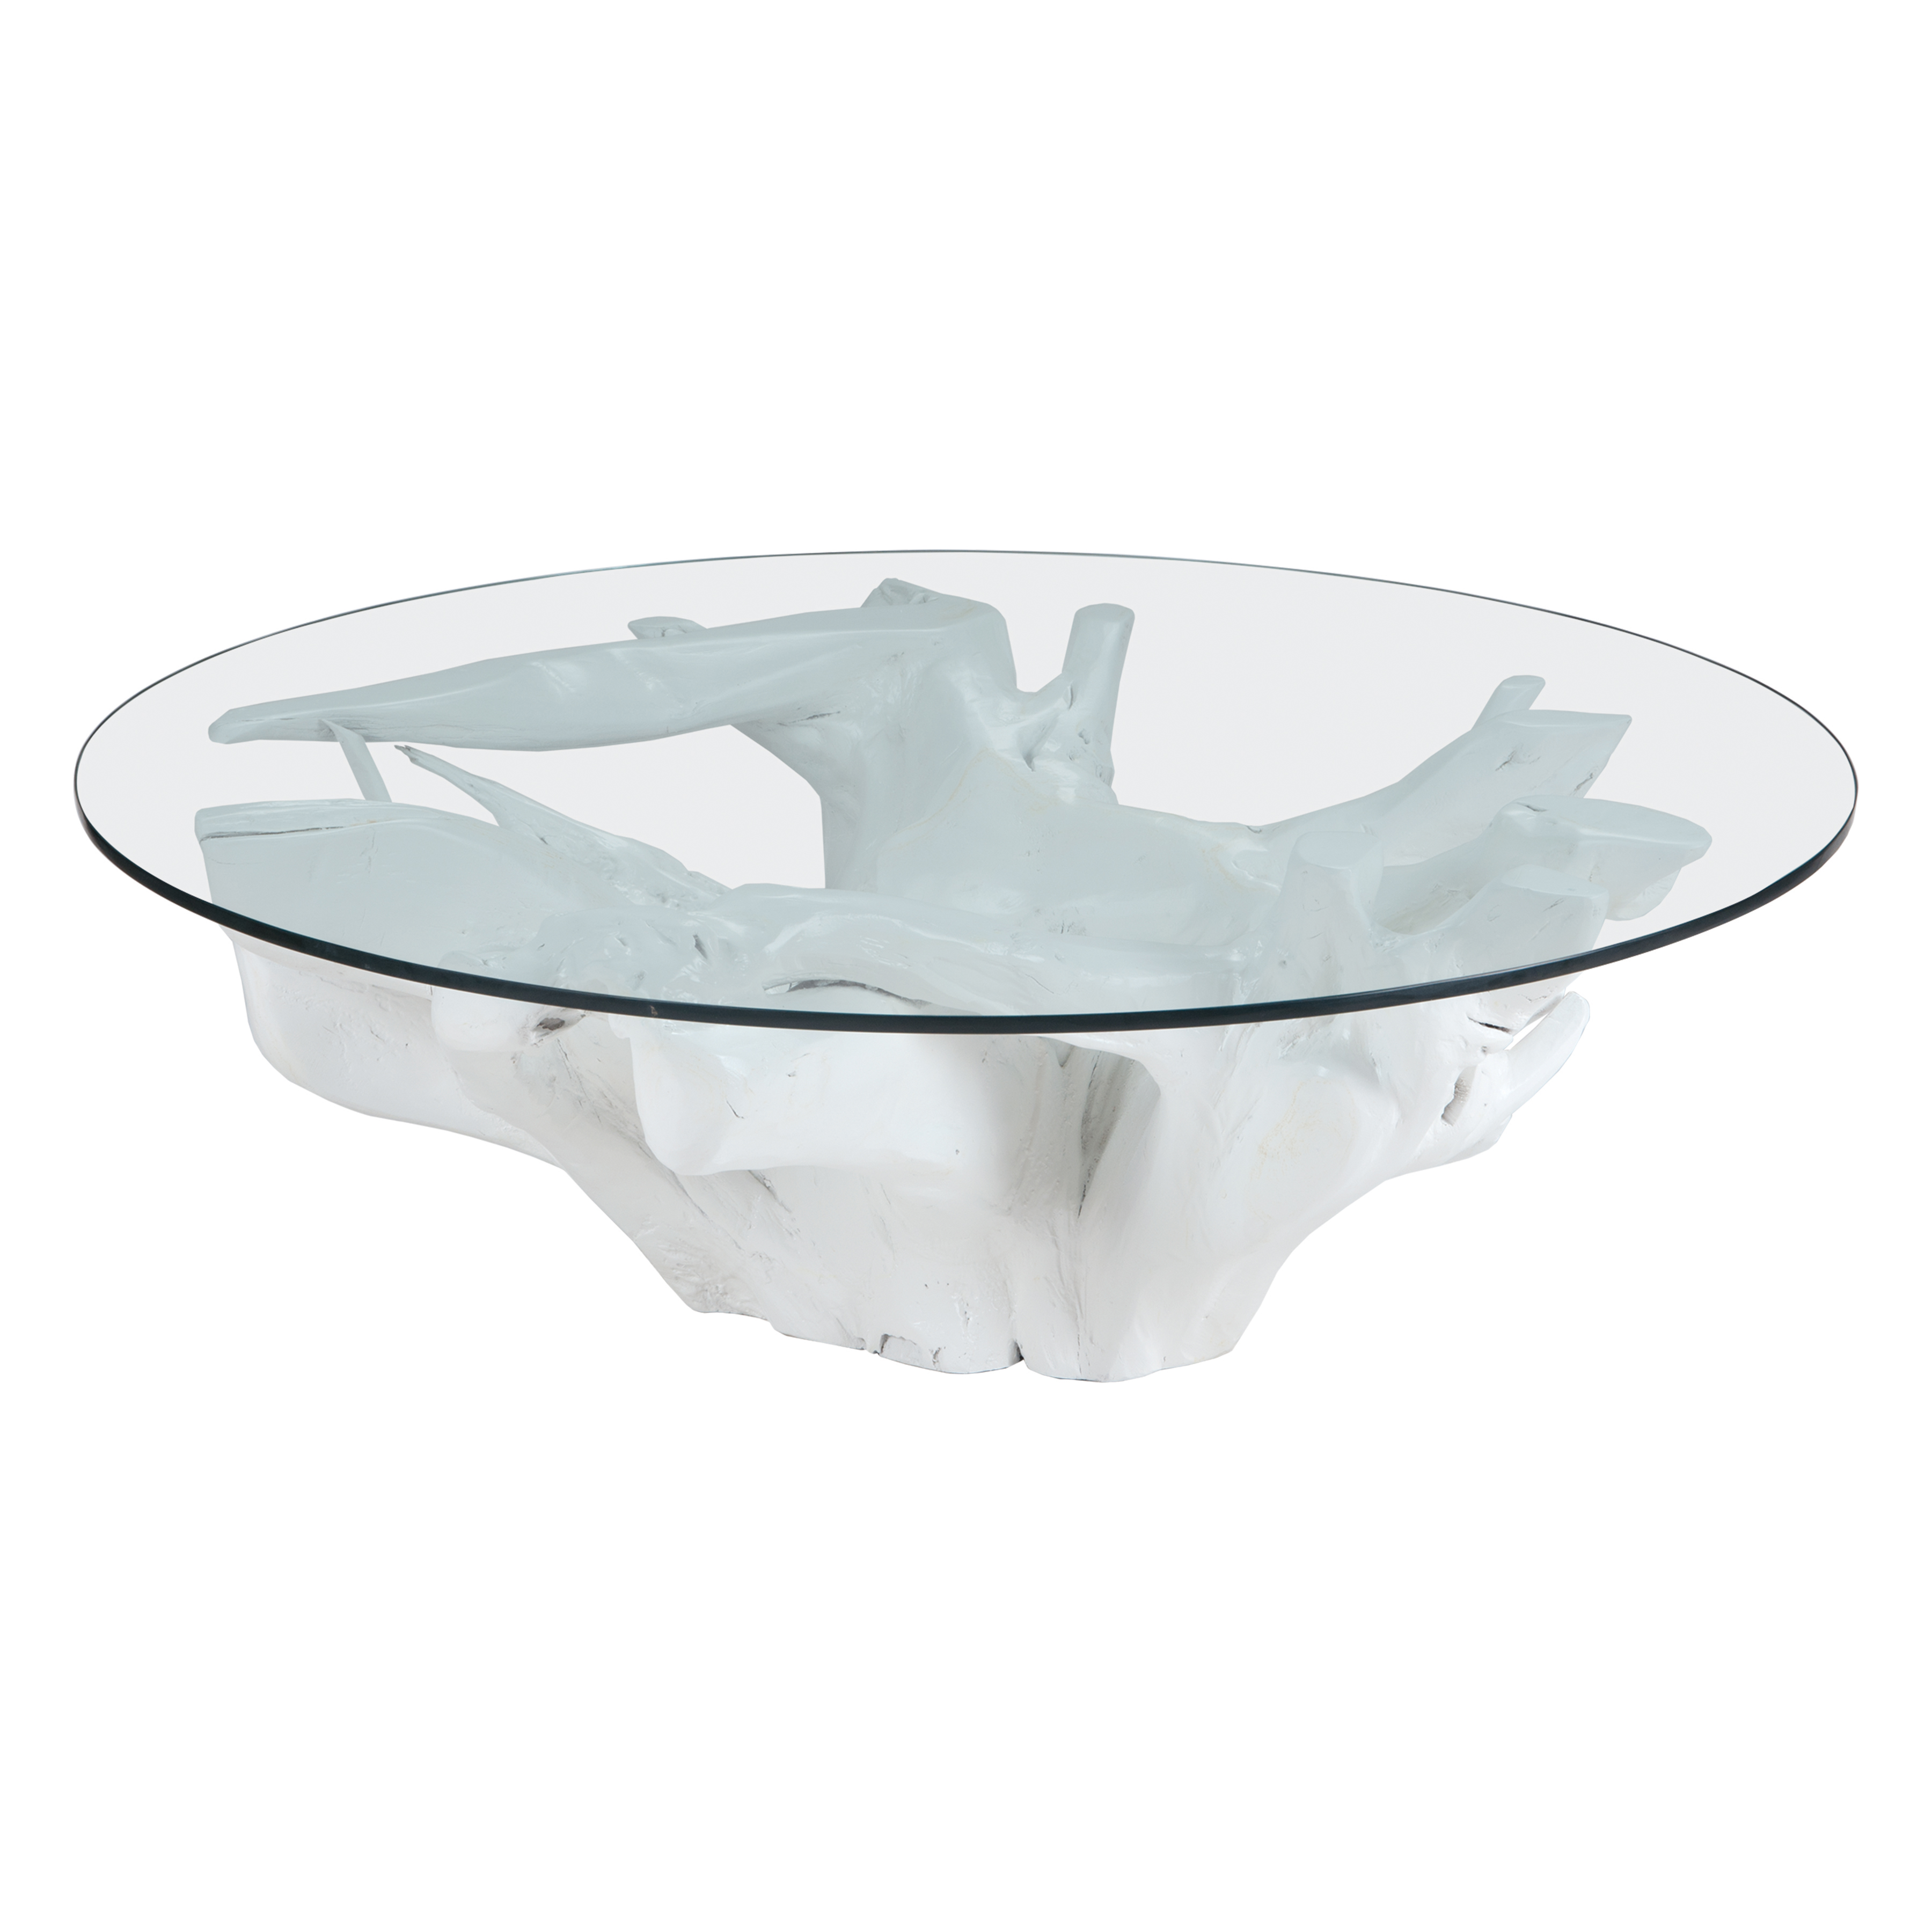 Yava Teak Root Cocktail Table with Glass Top in White | Elk Home